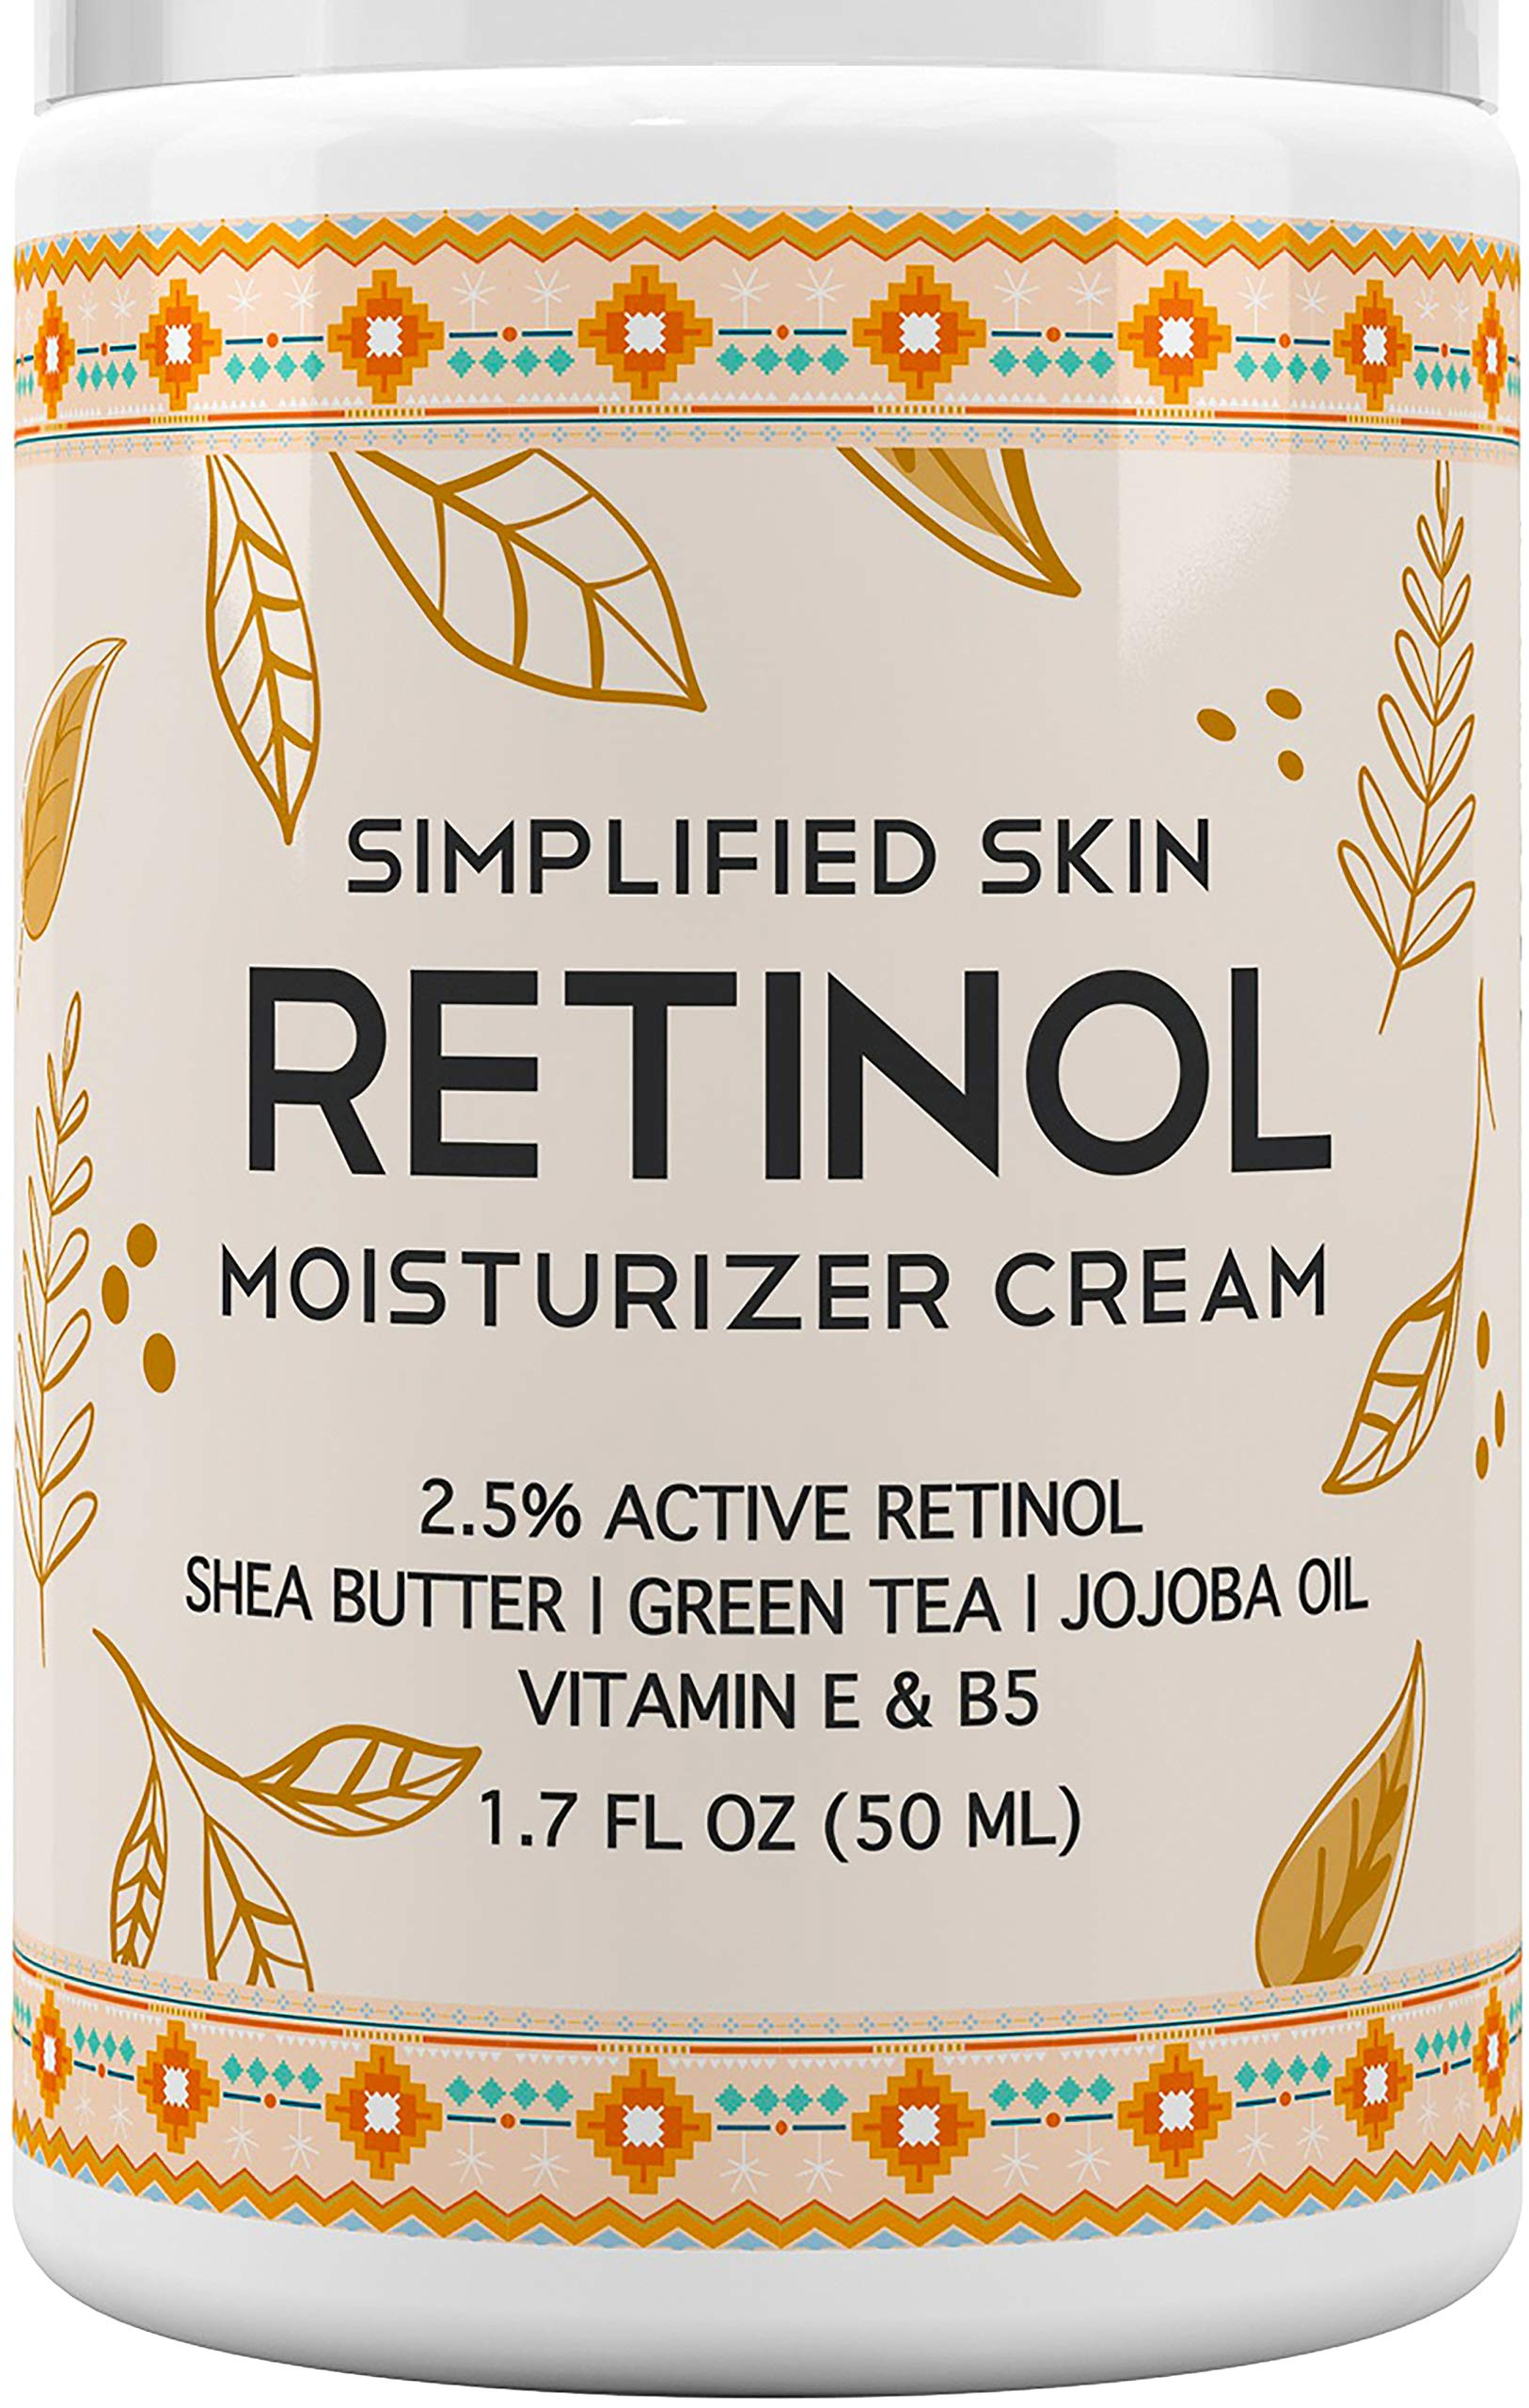 Retinol Moisturizer Cream 2.5% for Face & Eye Area with Vitamin E & Hyaluronic Acid for Anti Aging, Wrinkles & Acne - Best Night & Day Facial Cream by Simplified Skin 1.7 oz by Simplified Skin